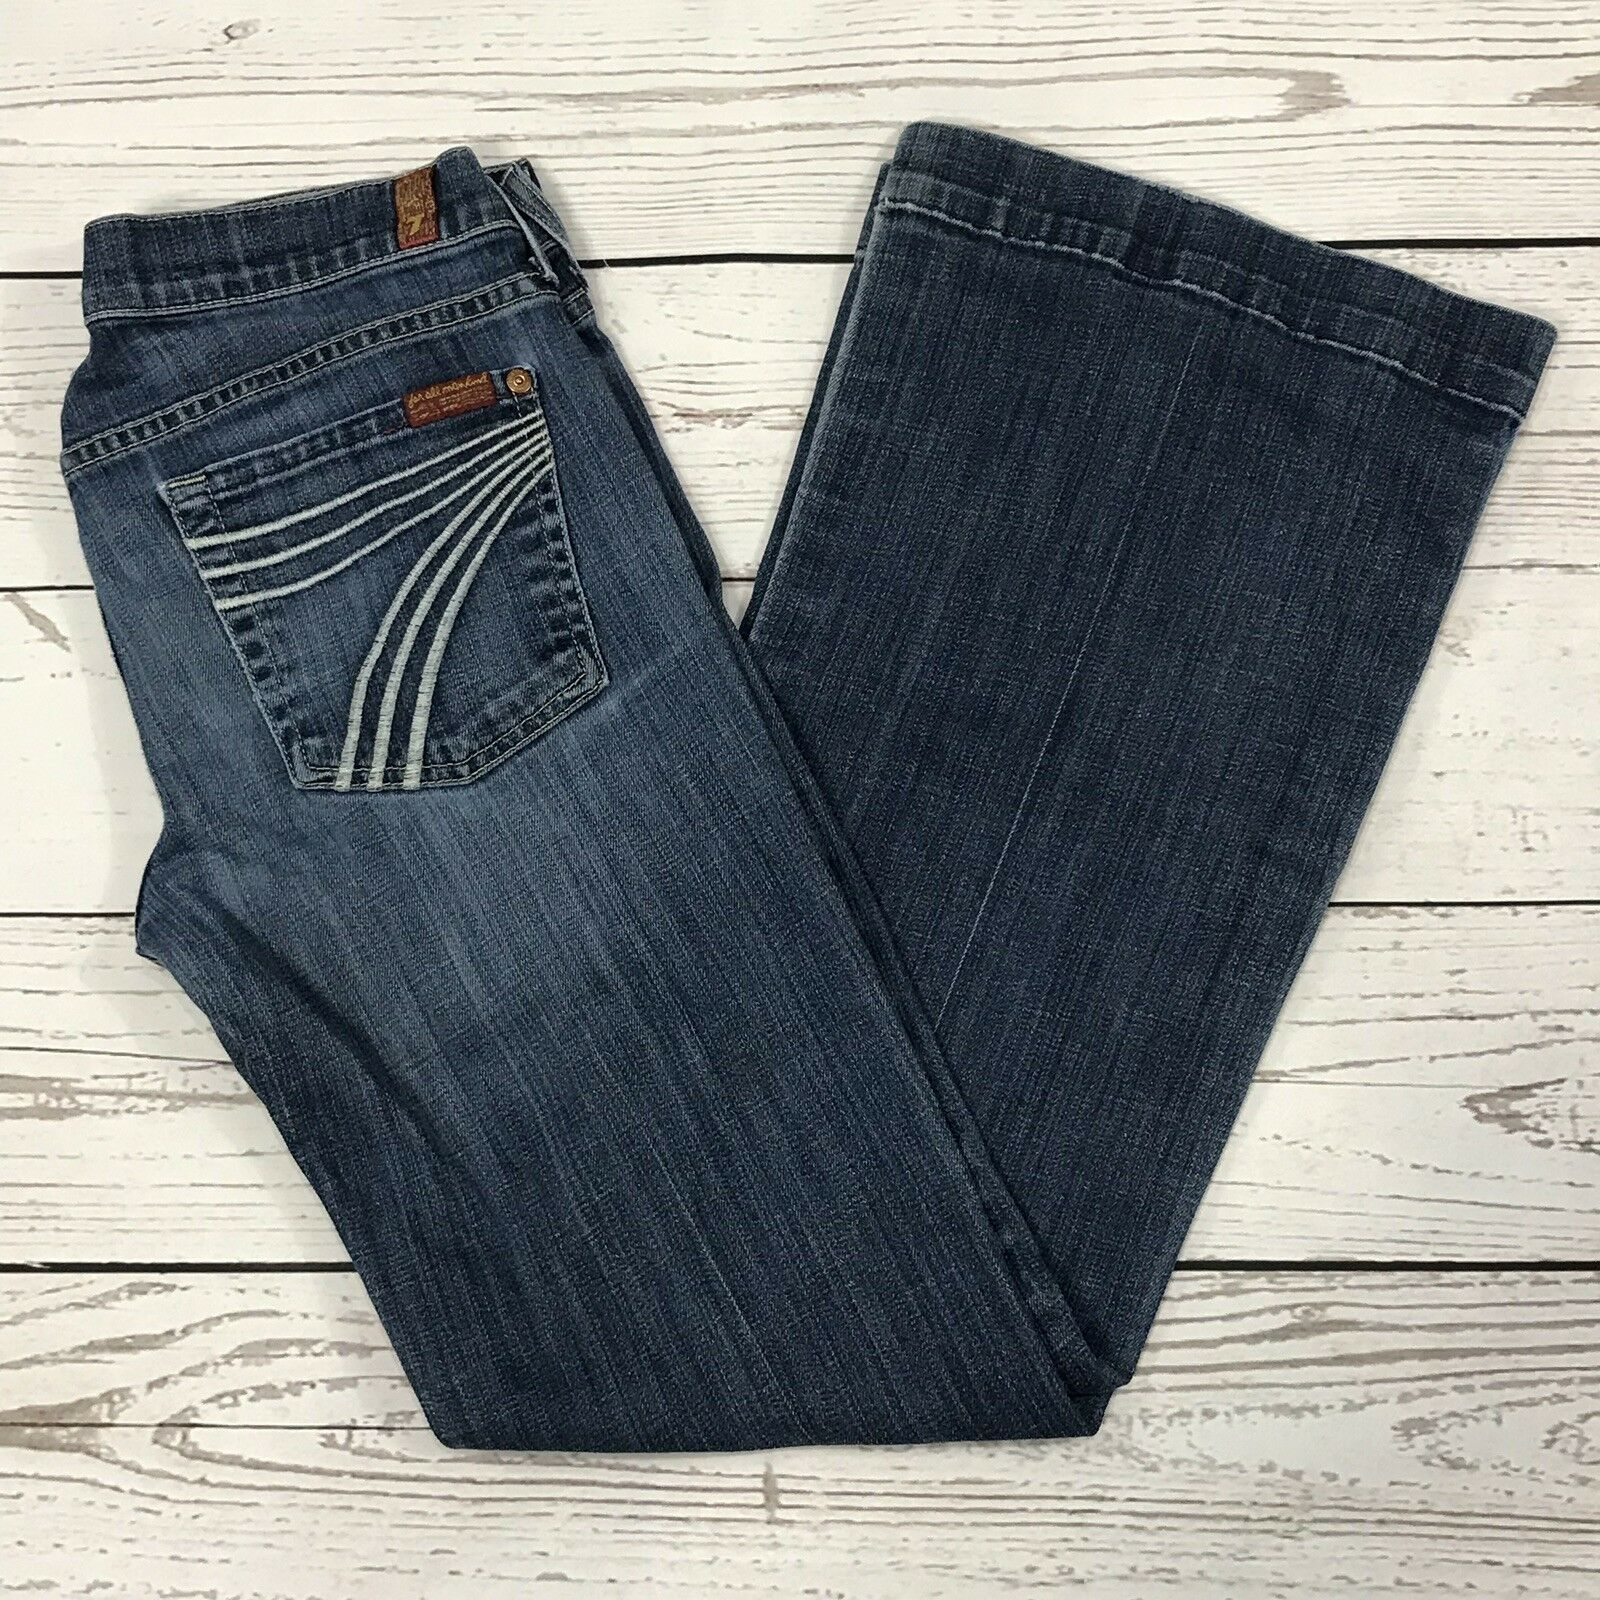 7 For All Mankind DOJO Womens SZ 29 Bootcut Flare Whiskered Low-Rise bluee Jeans